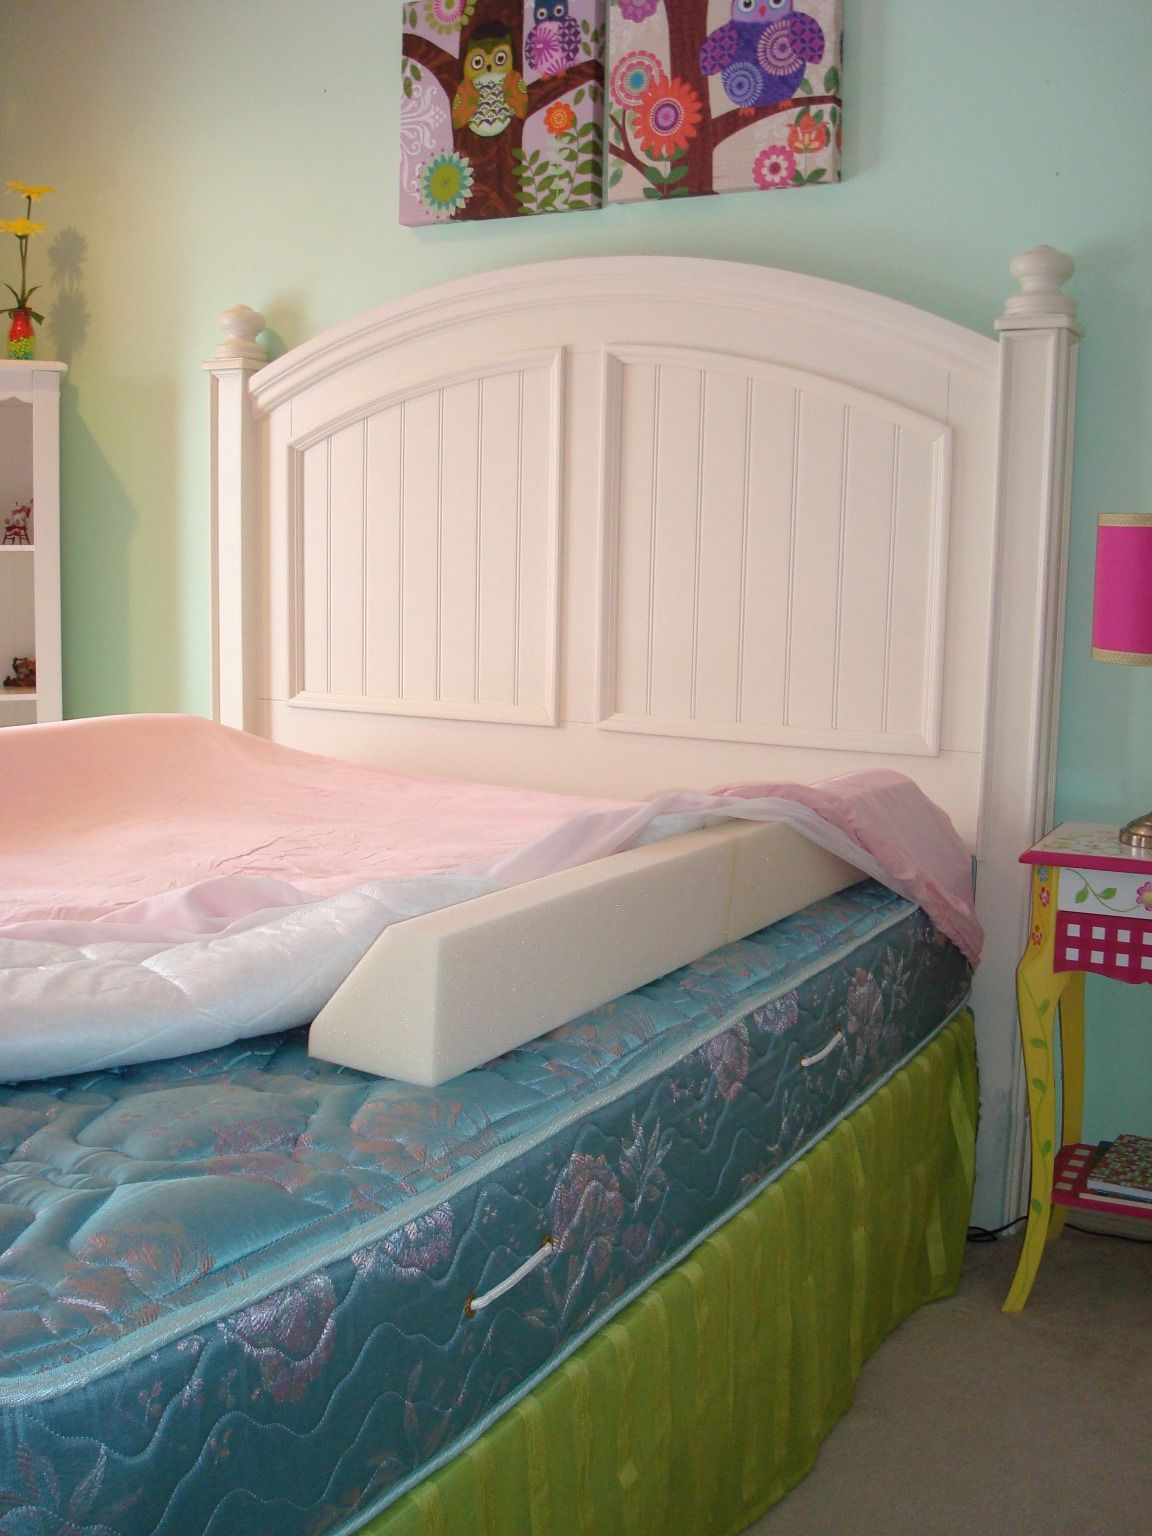 Magic bed bumpers to keep child from falling off Bed